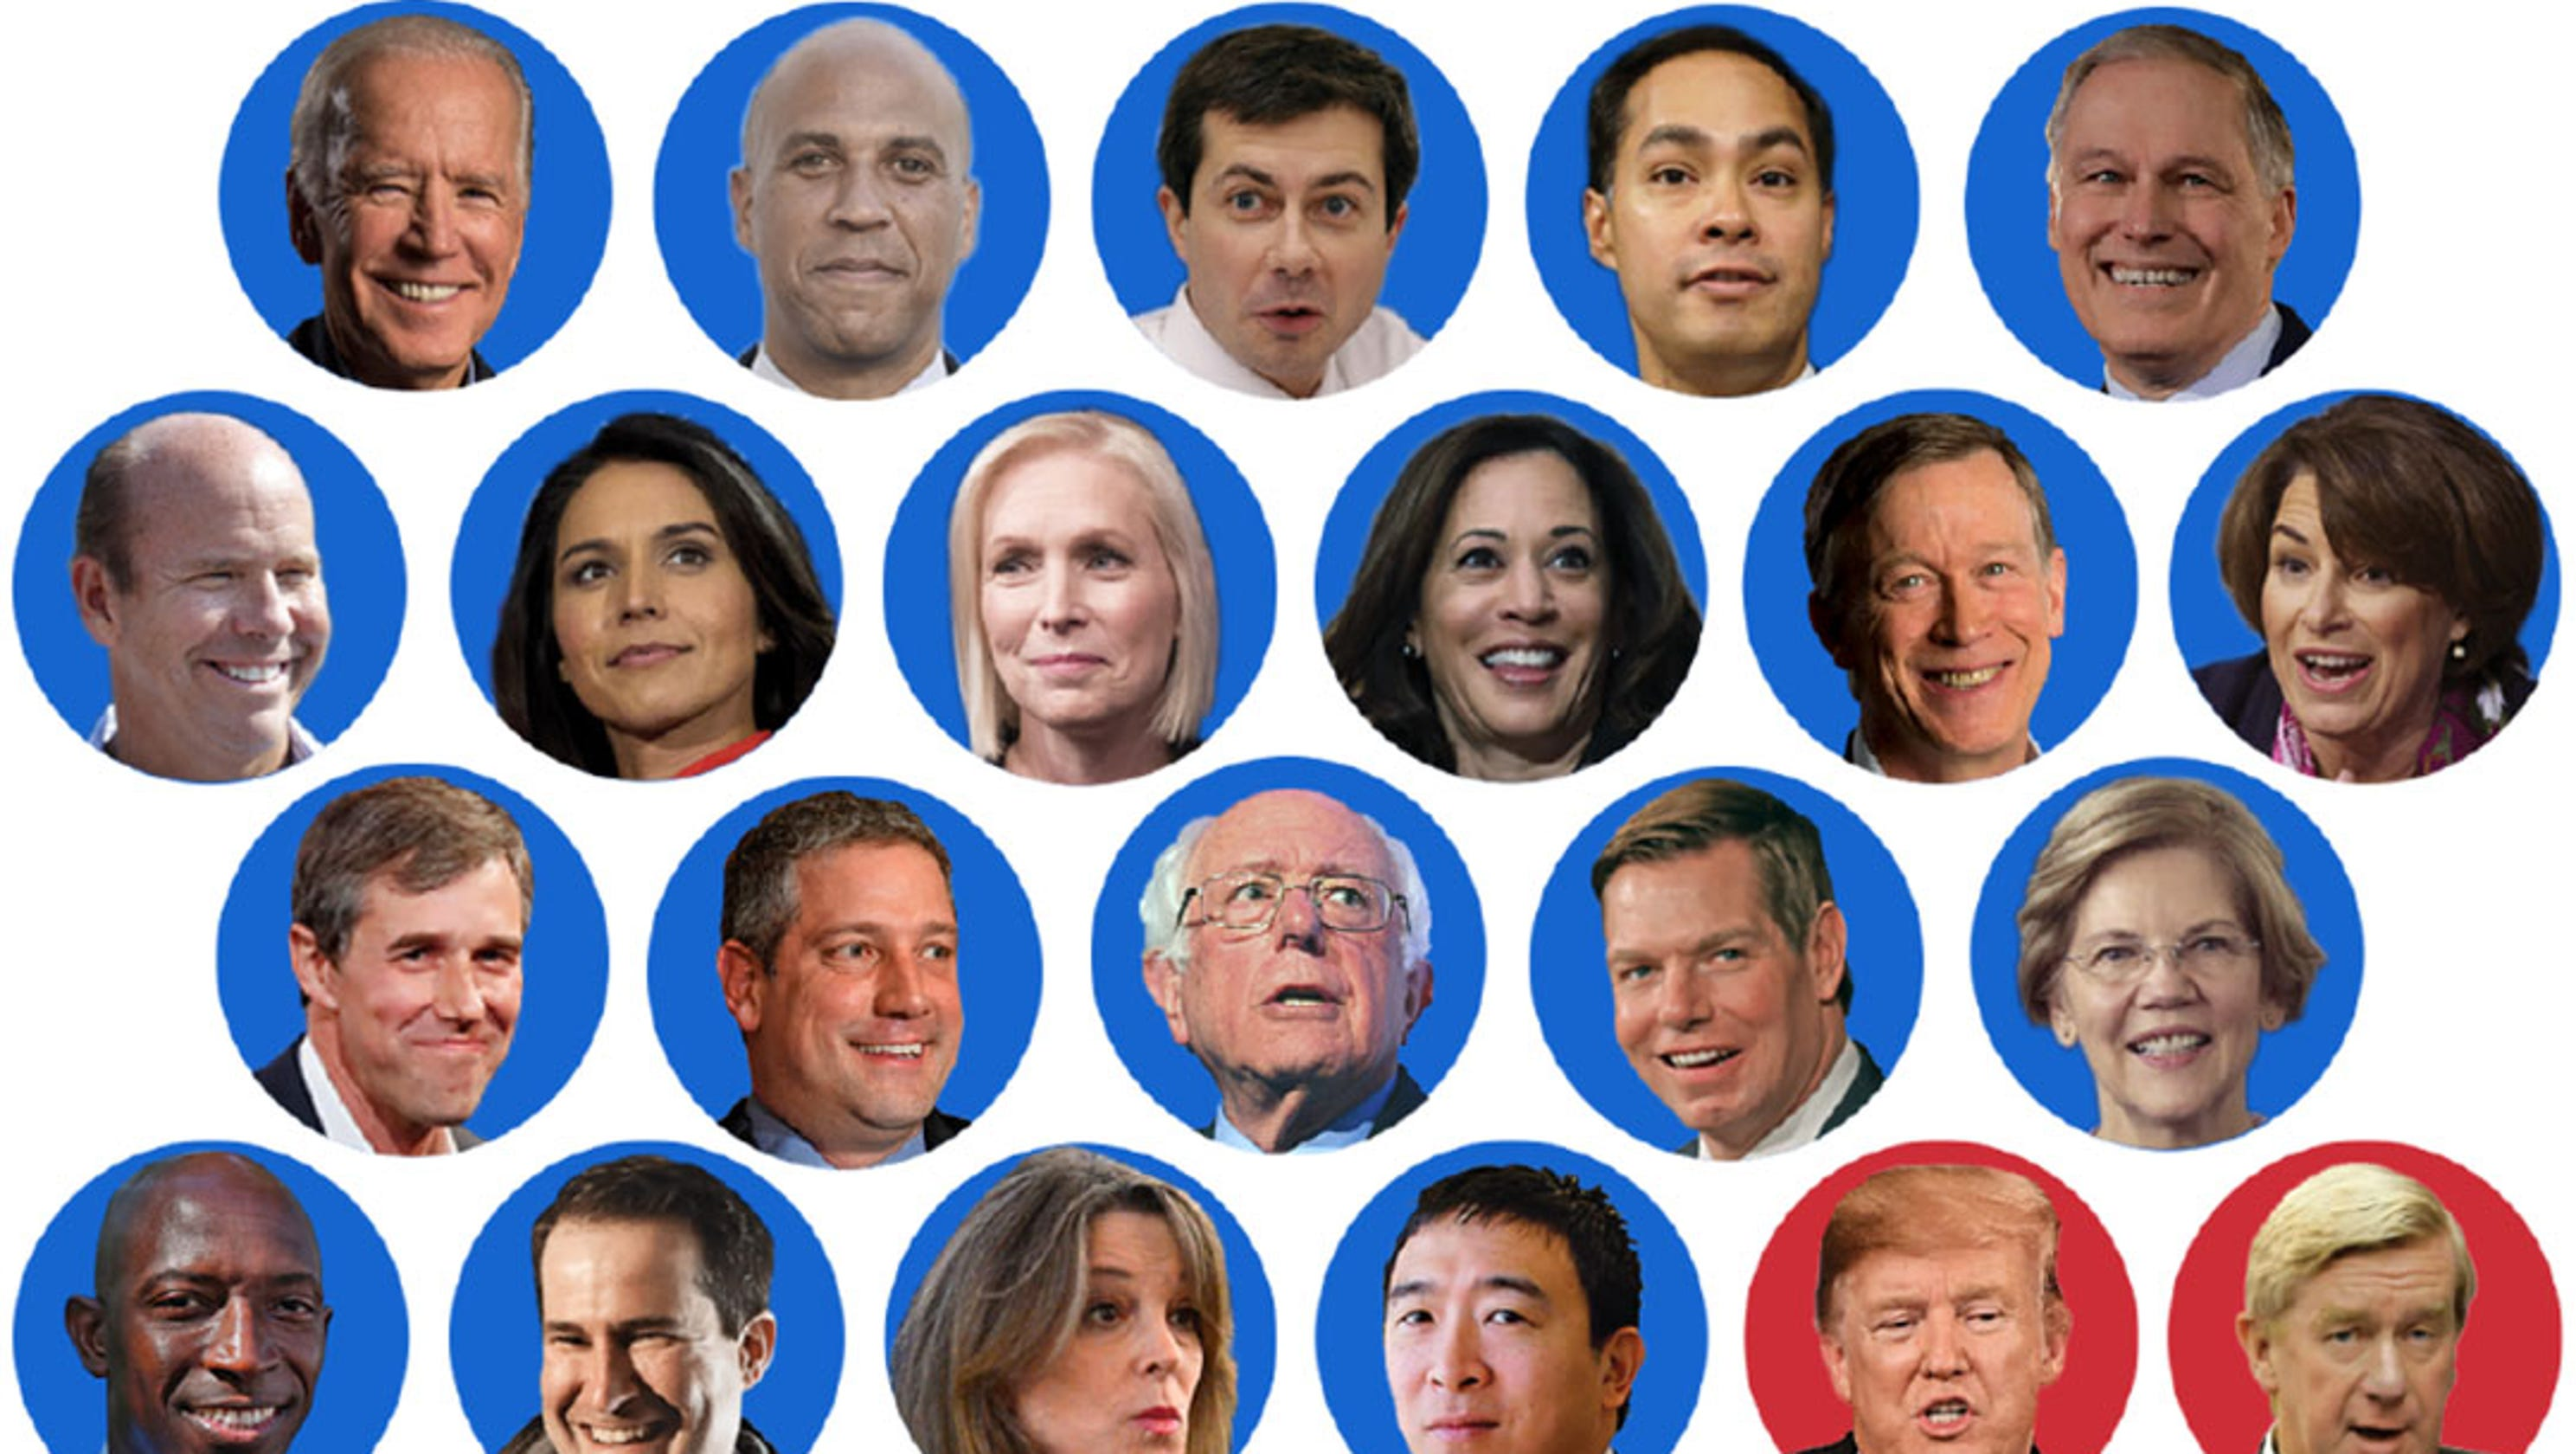 Who made it into the first 2020 Democratic primary debate?